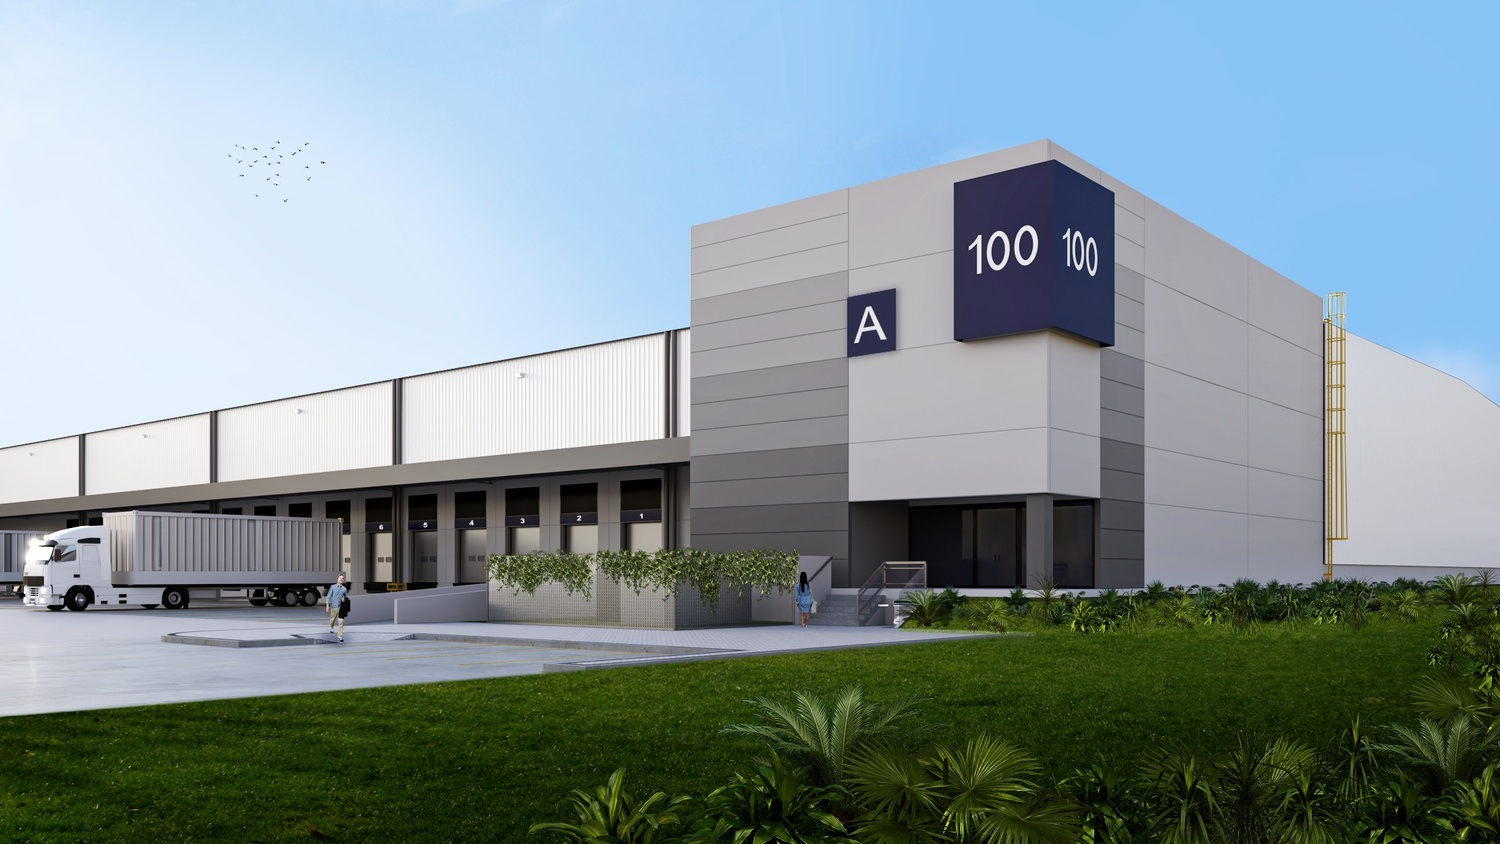 A large building that is labeled as A 100 with semi trucks that are backed into the loading bays of it.